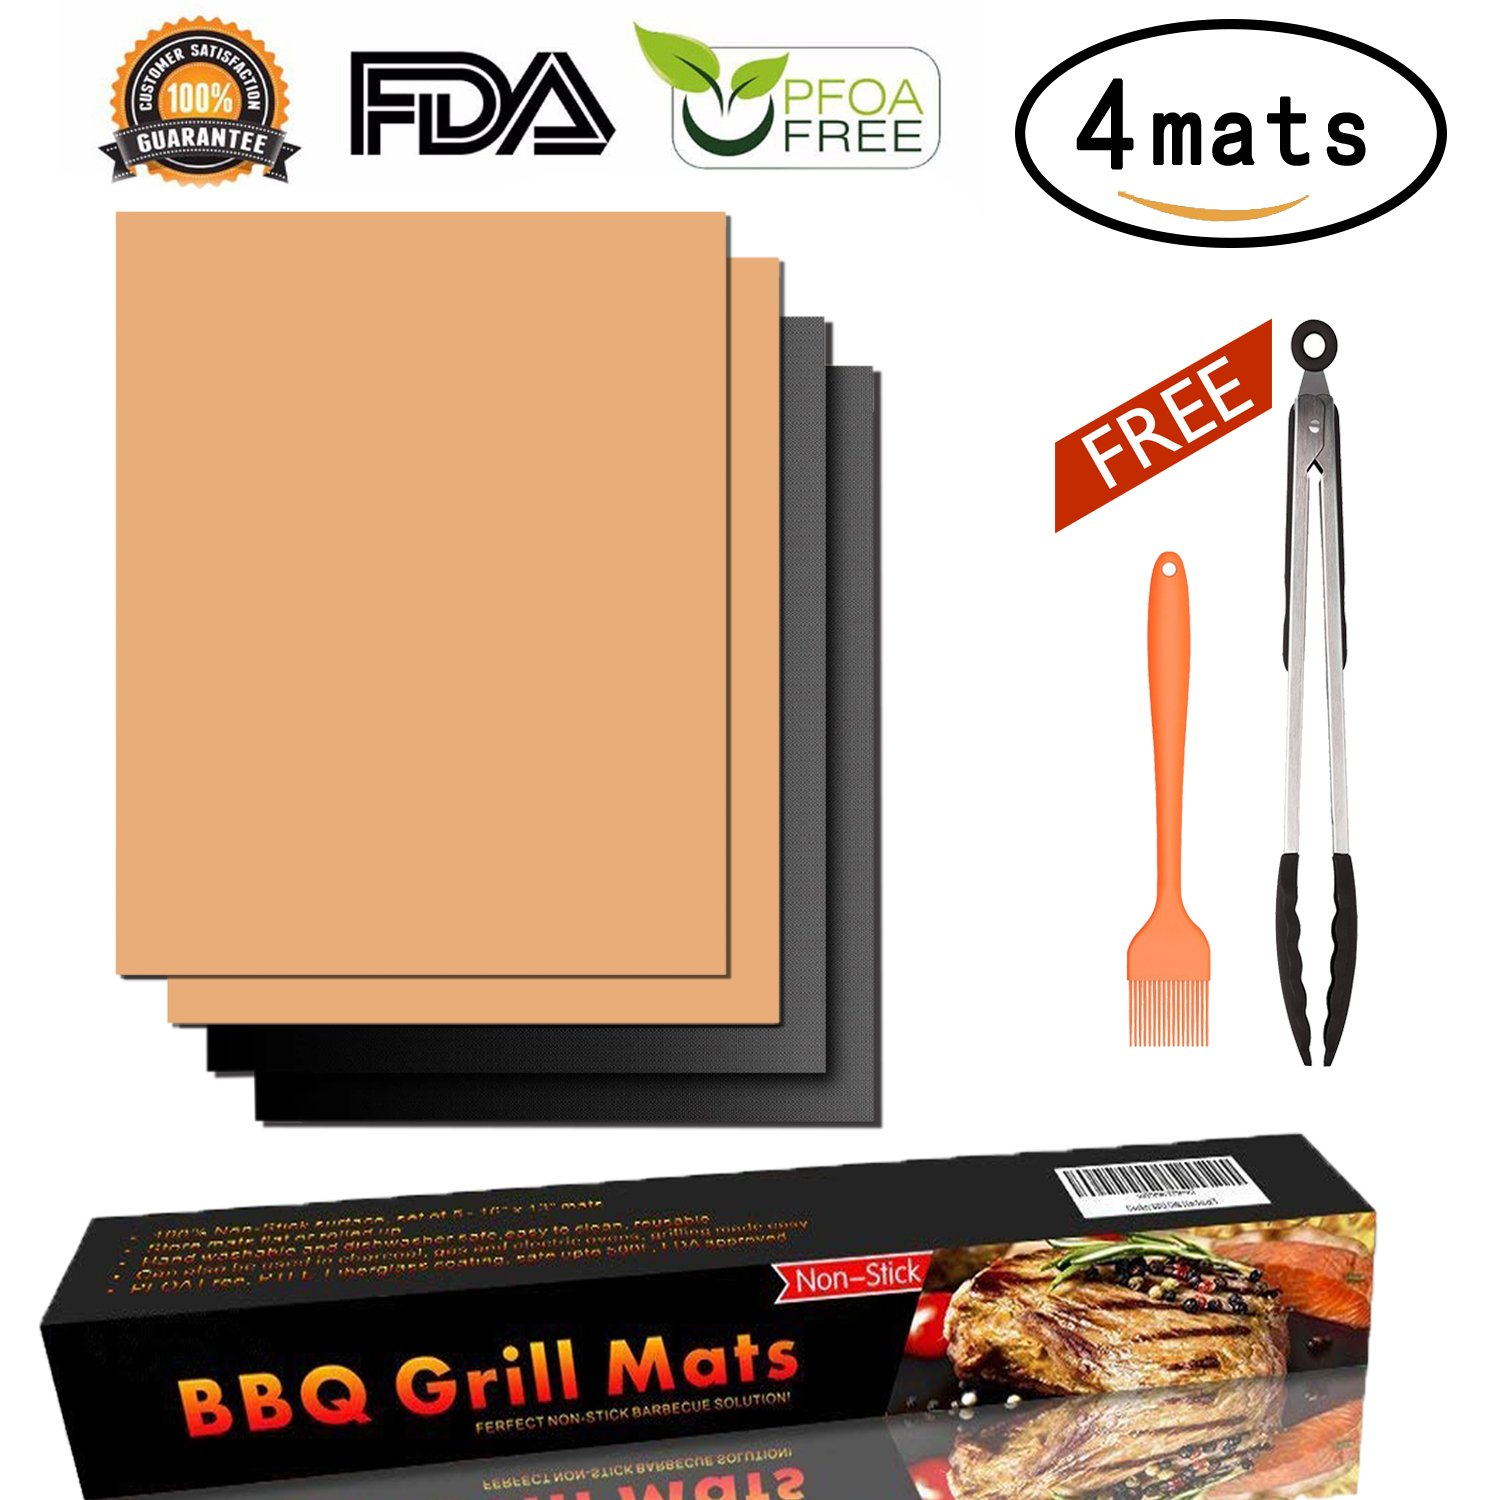 AUERVO Grill Mat Set of 4, BBQ Grill Mat Baking Mat Non Stick,FDA Approved,Reusable,Easy to Clean Barbecue Grilling Perfect for Gas, Charcoal,Electric Grills,Veggies With Silicone Tongs Brush